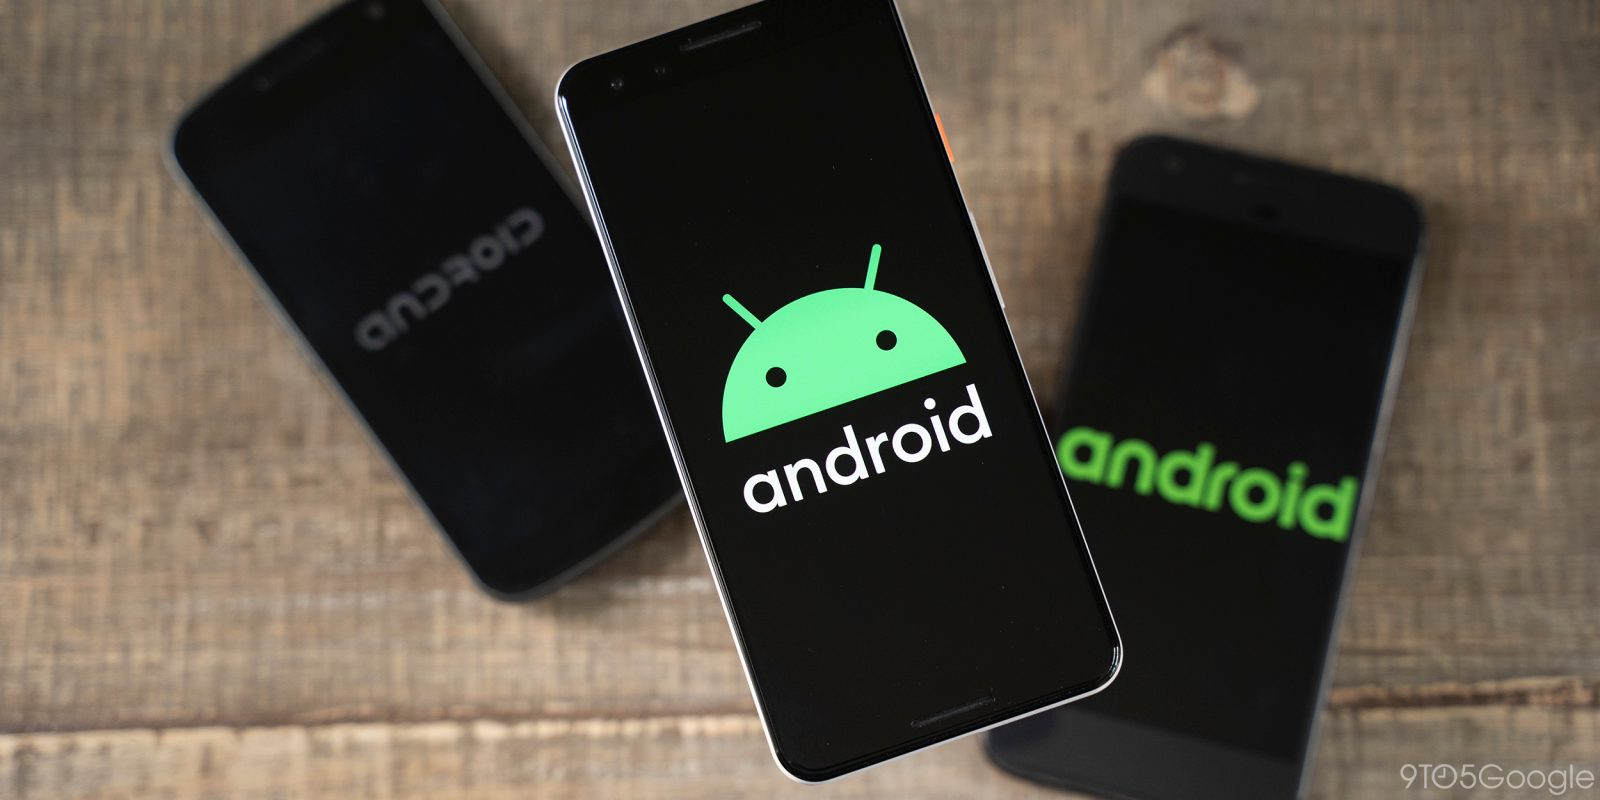 Google explains how Android's new brand is built for a new decade and busy future